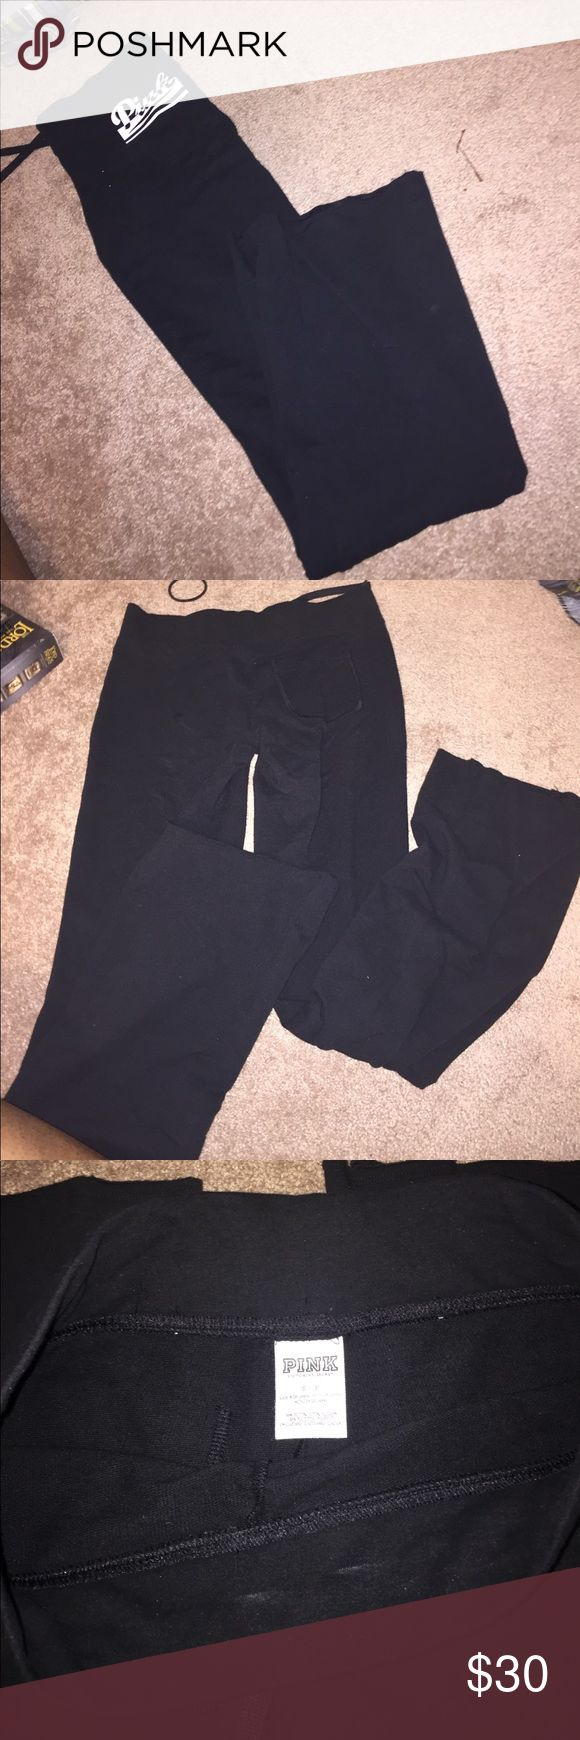 Pink yoga pants Never worn PINK Victoria's Secret Pants